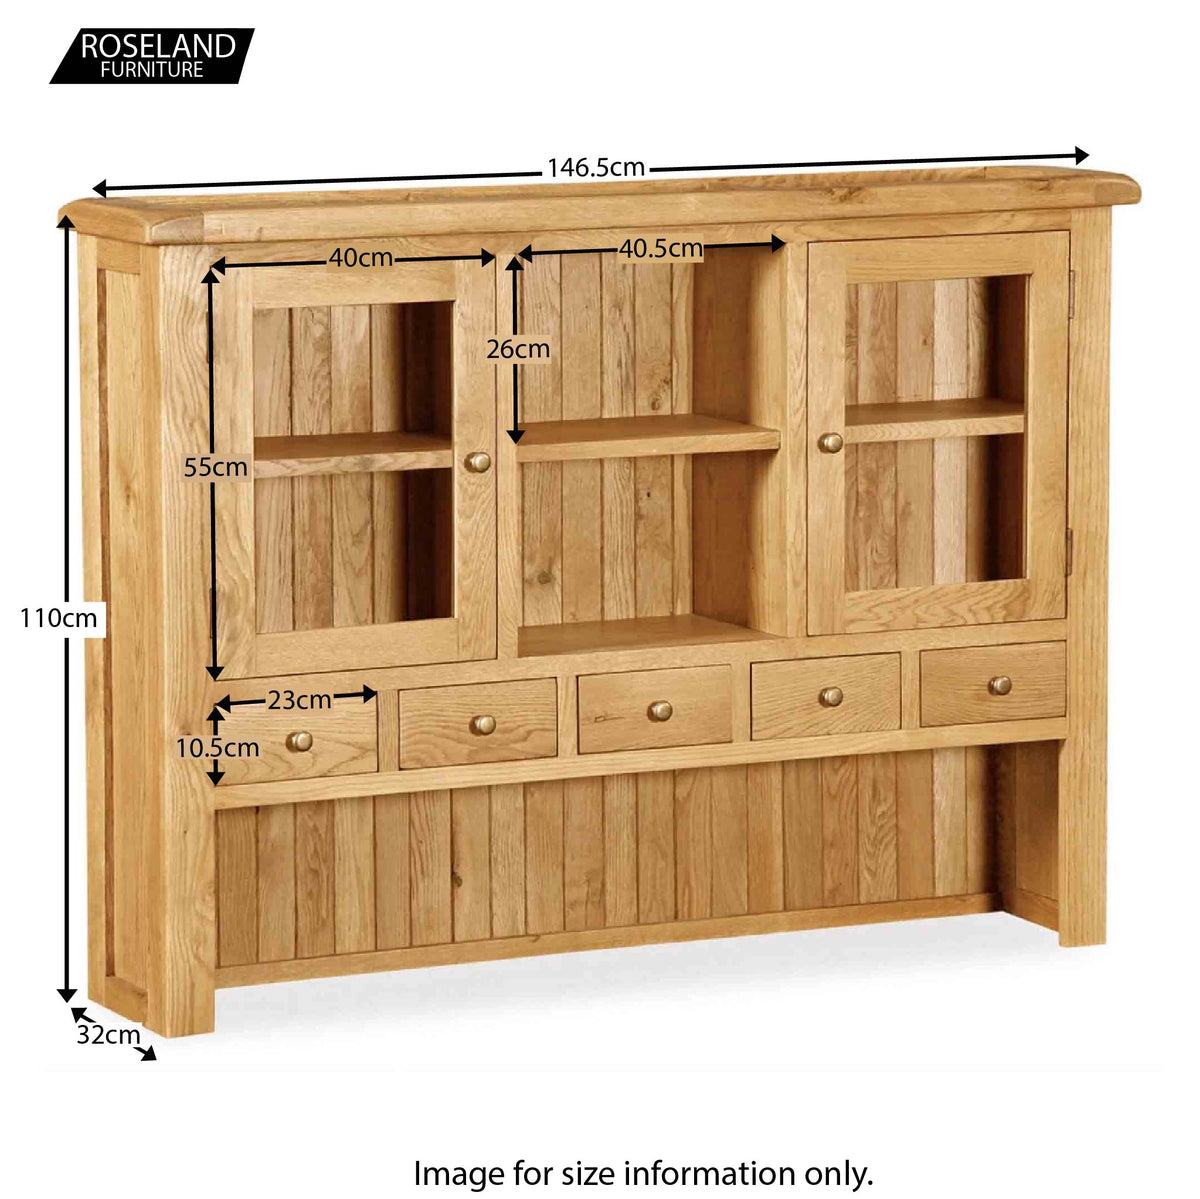 Zelah Oak Large Sideboard Hutch - Size Guide